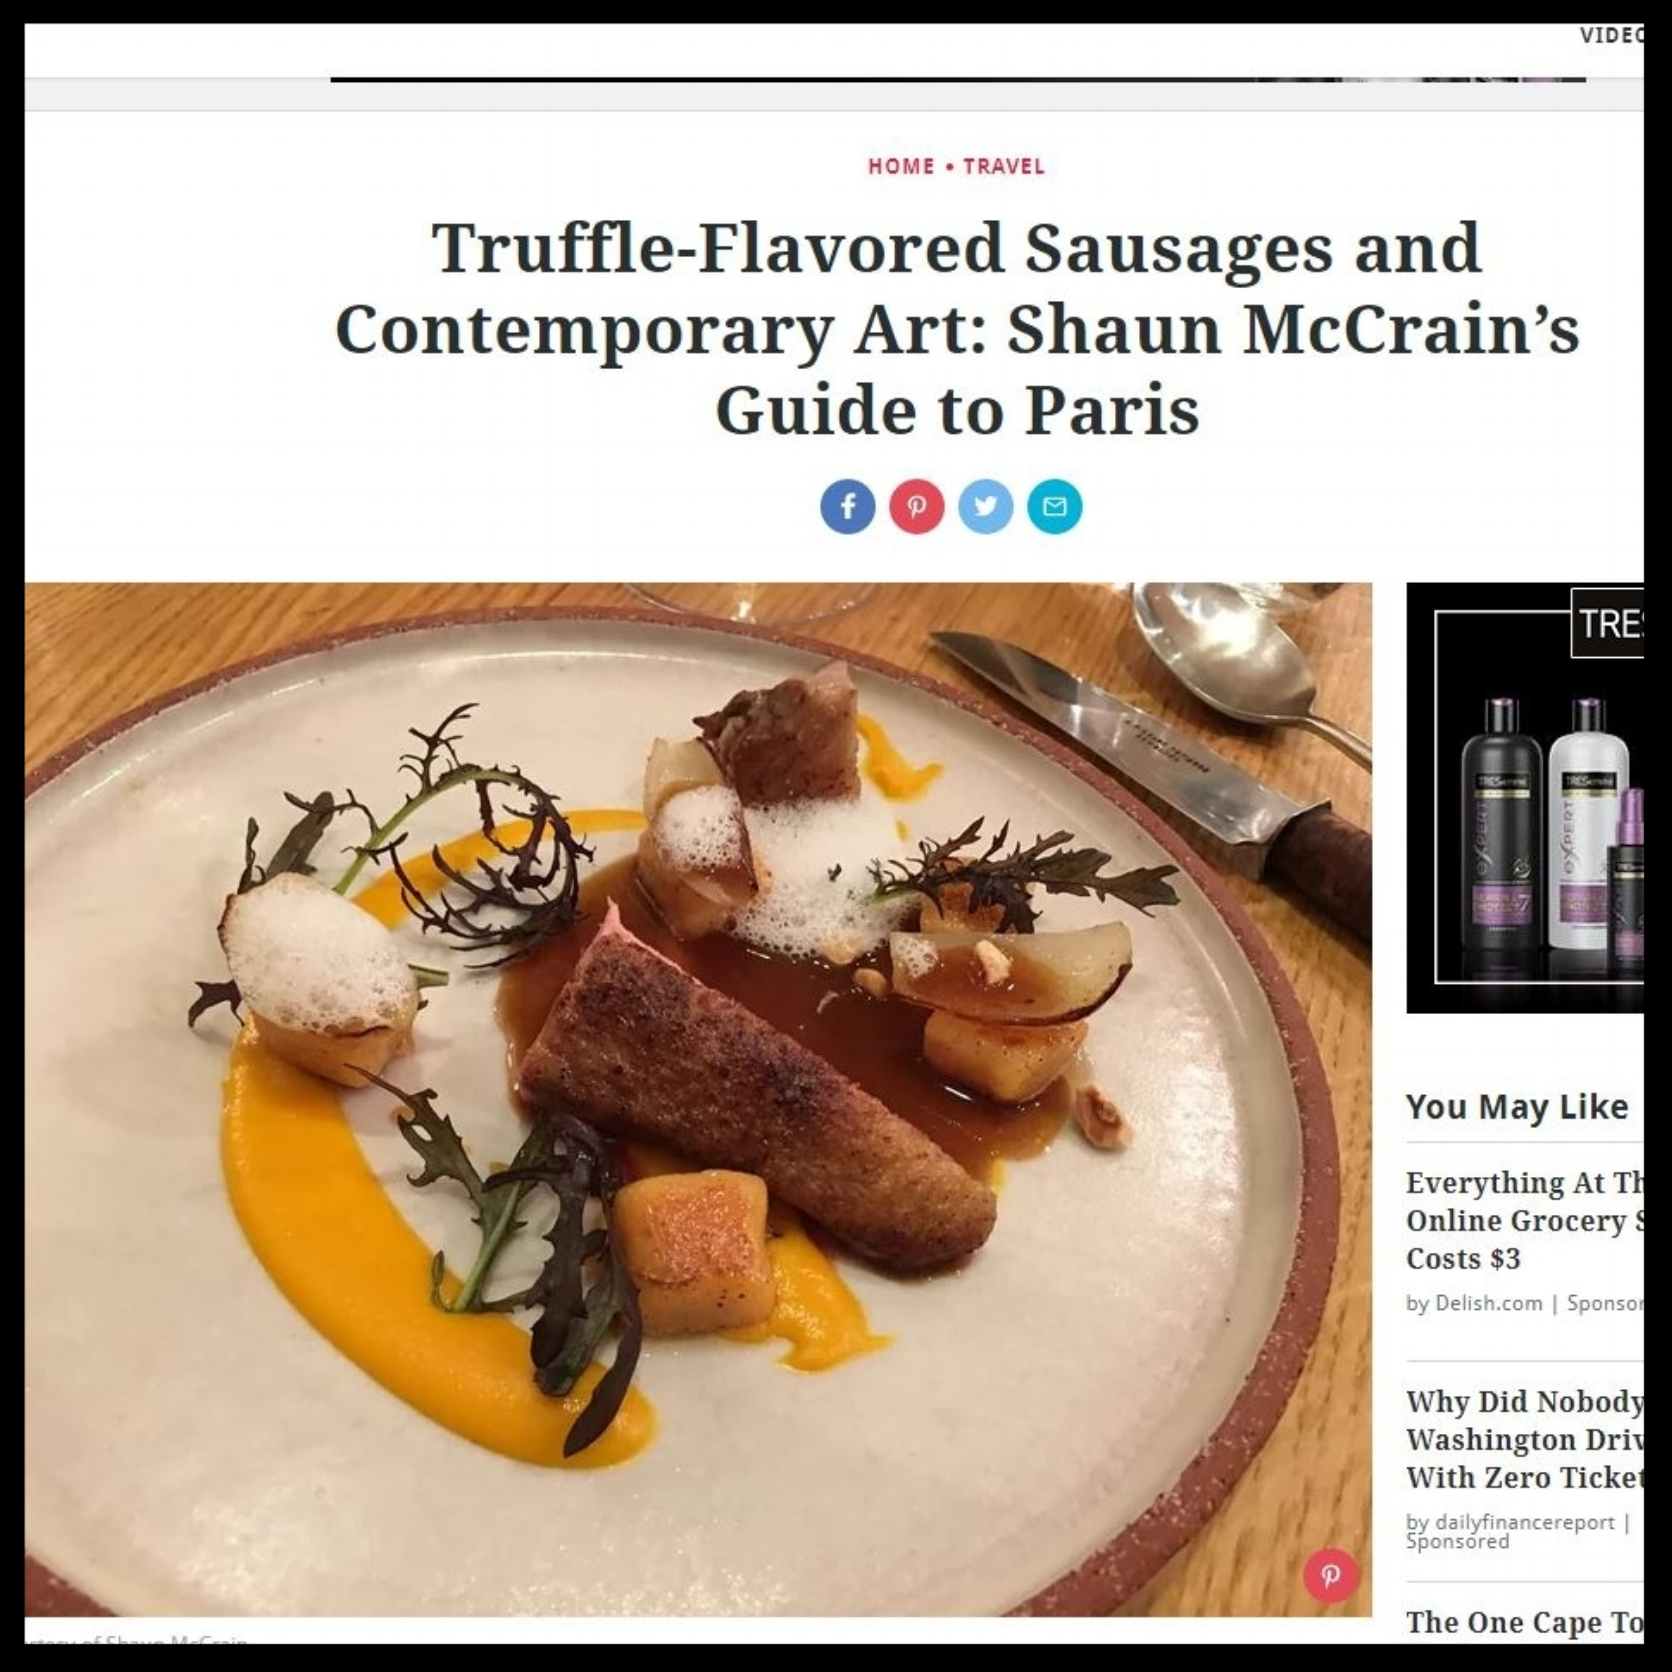 """Food & Wine Magazine   November 2017  """"Truffle-Flavored Sausages and Contemporary Art: Shaun McCrain's Guide to Paris"""""""